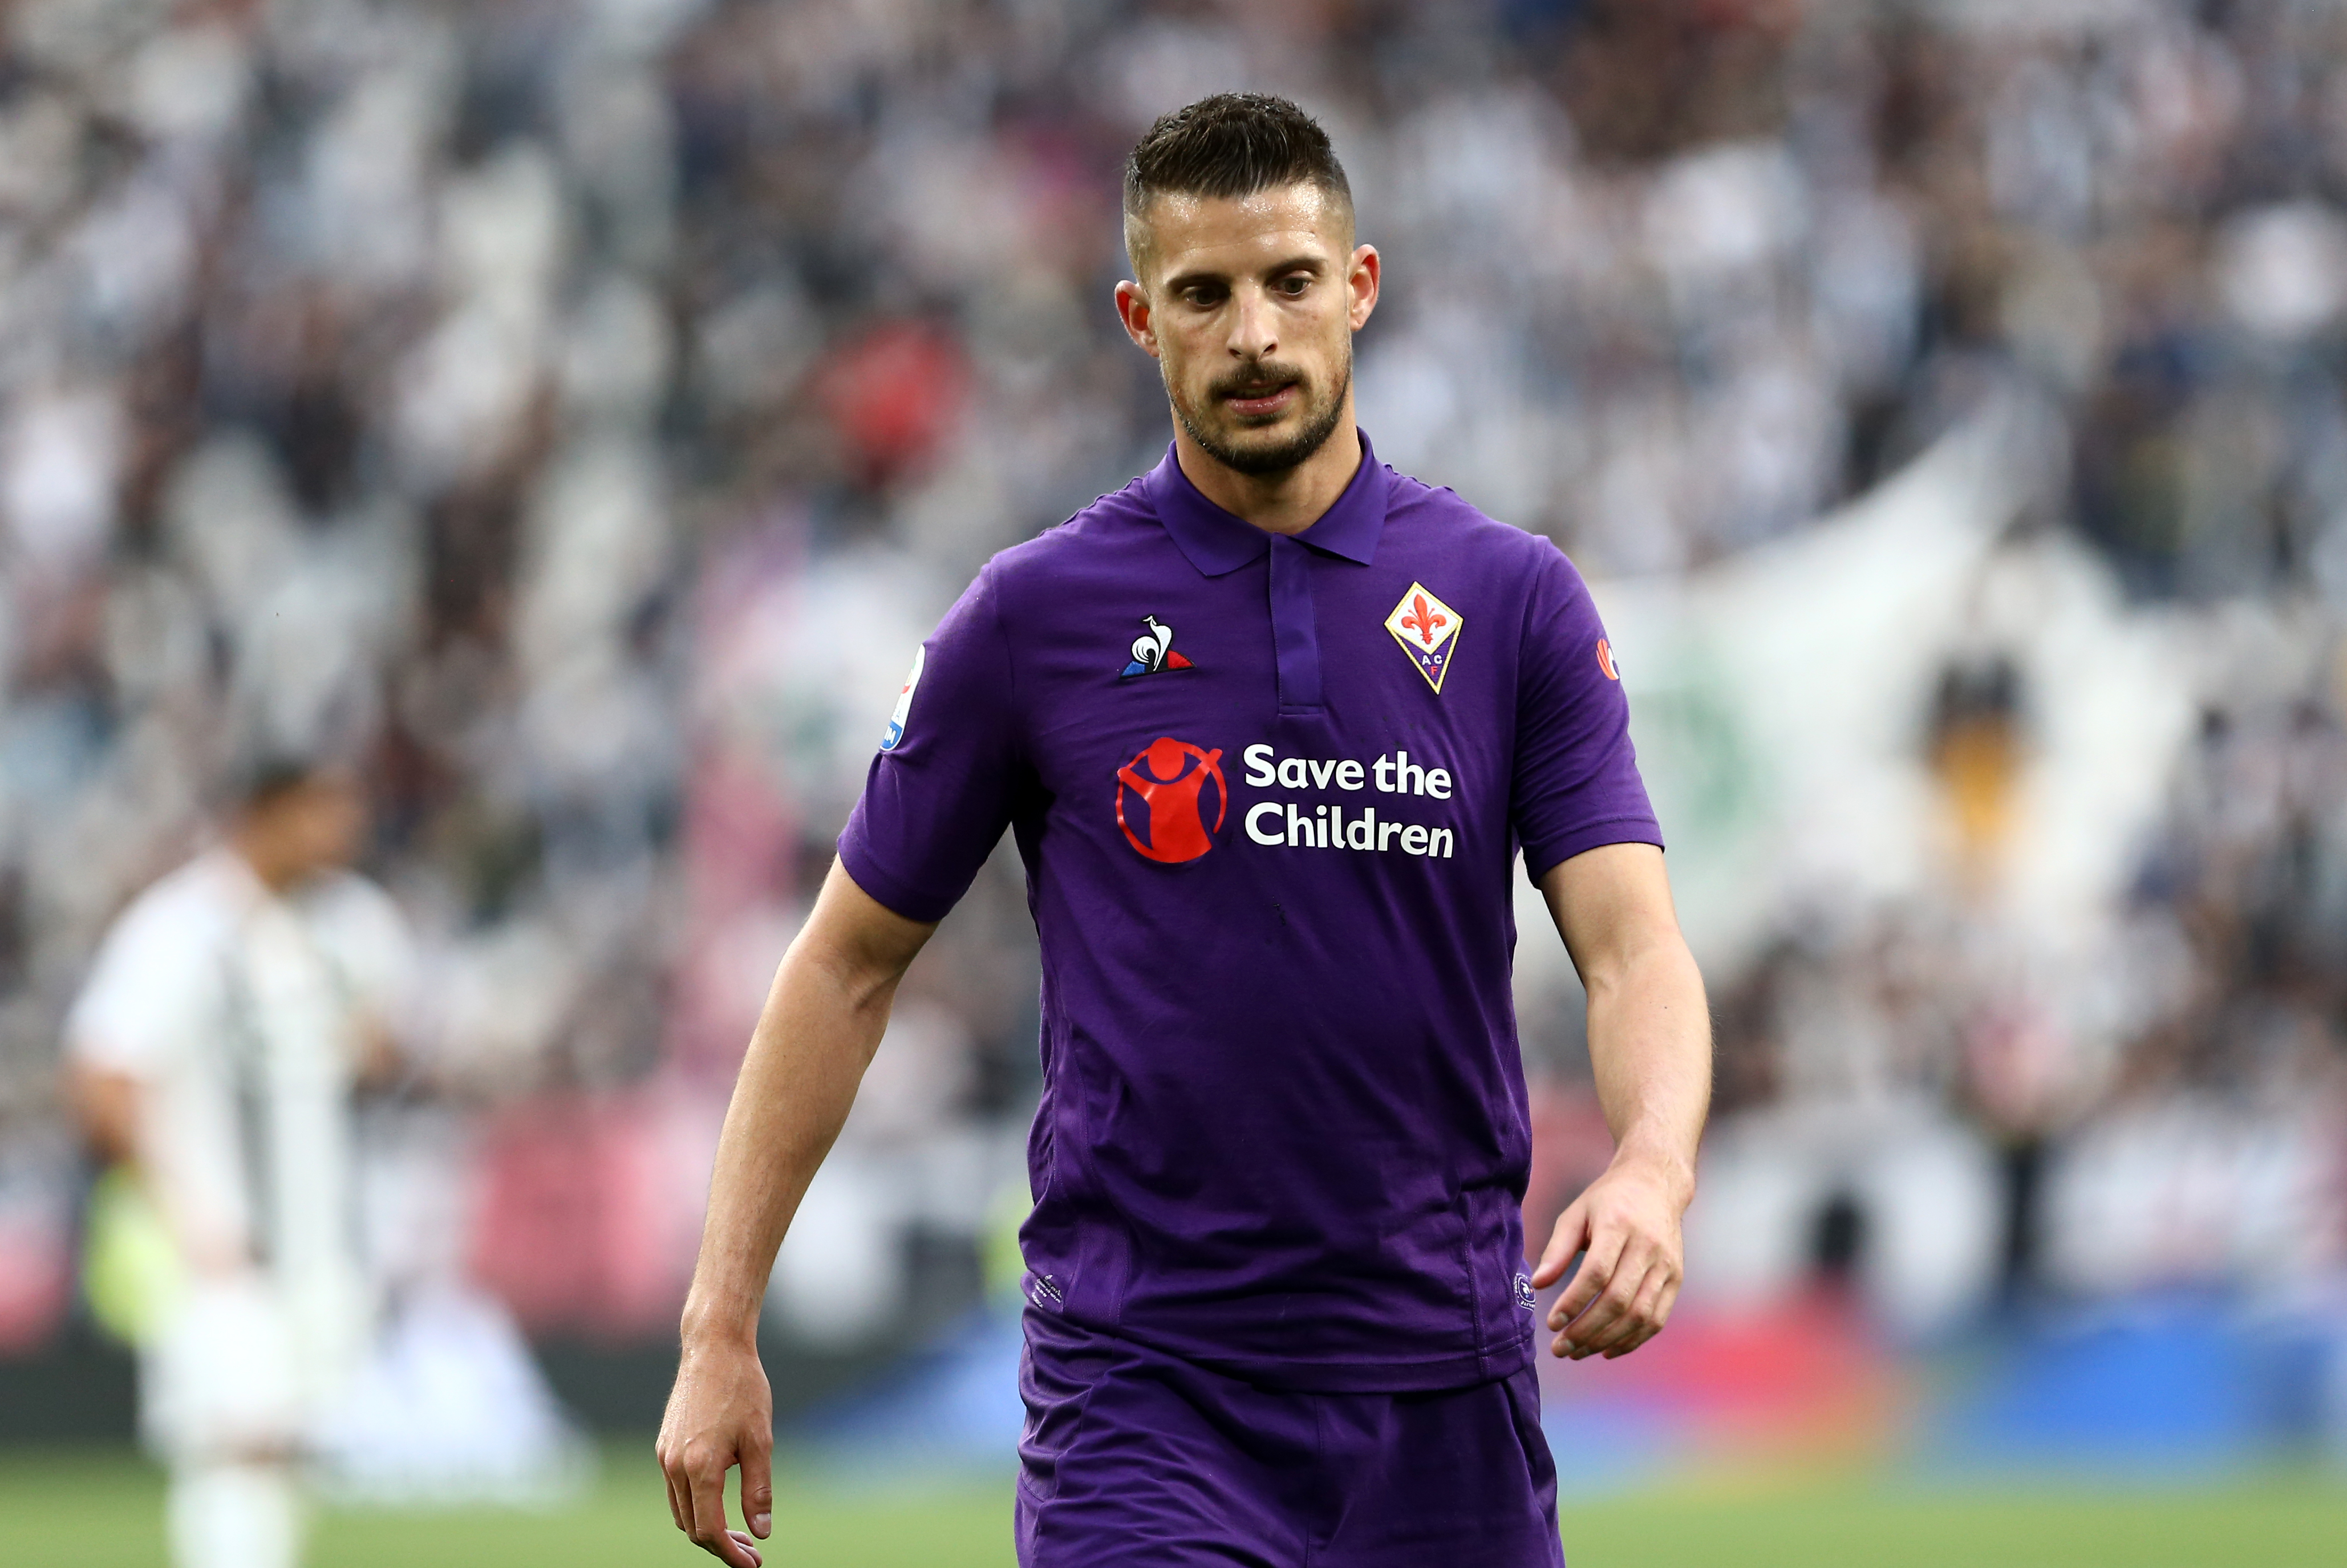 Kevin Mirallas transfer rumours debunked